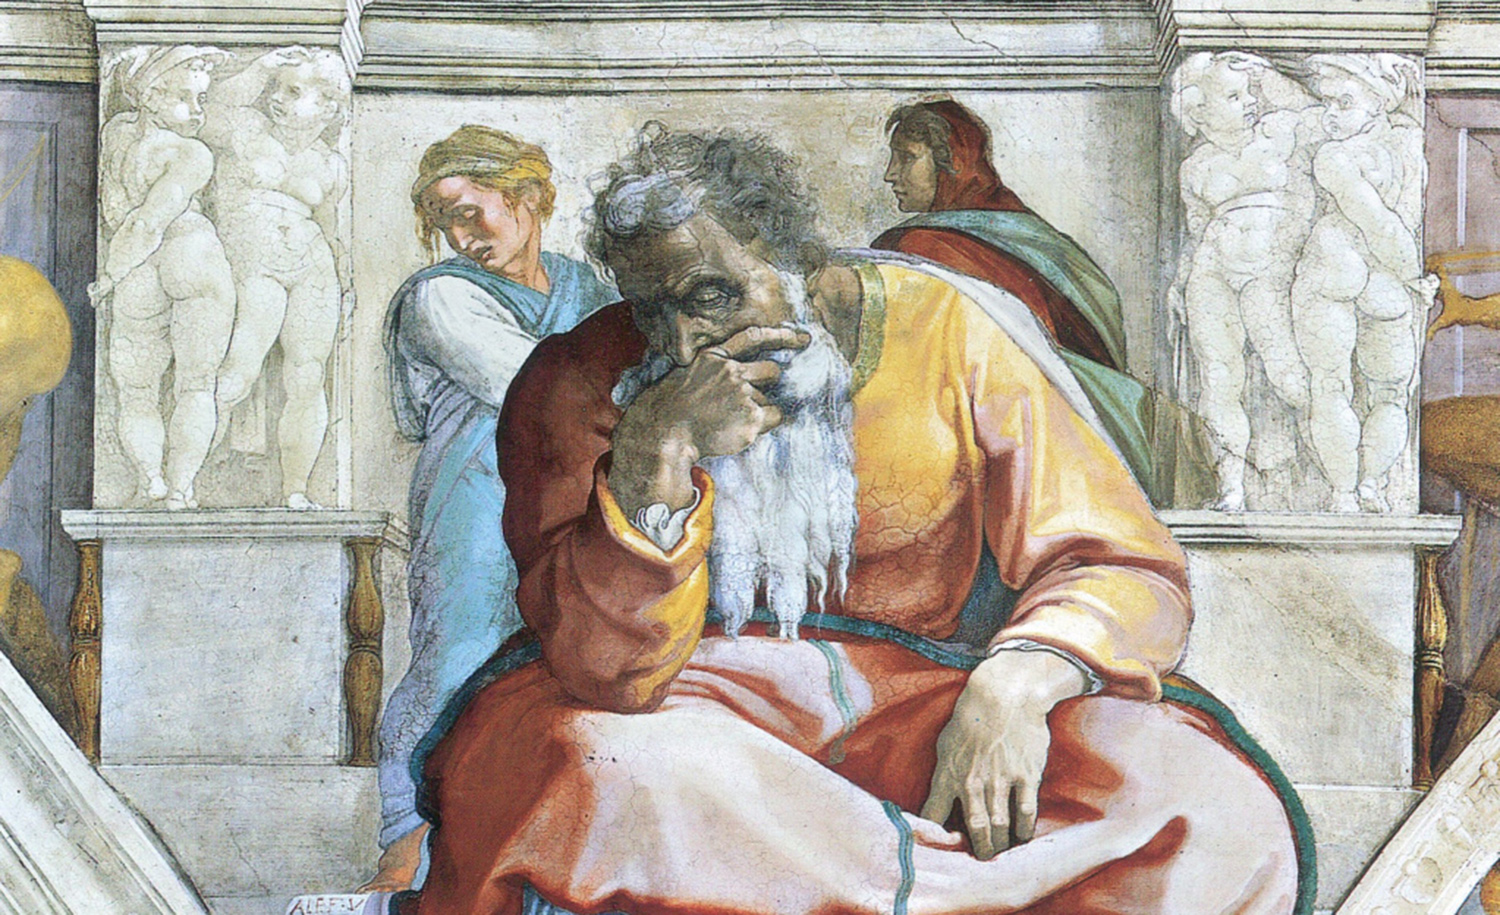 A 1512 fresco of the prophet Jeremiah by Michelangelo at the Sistine Chapel in Rome.